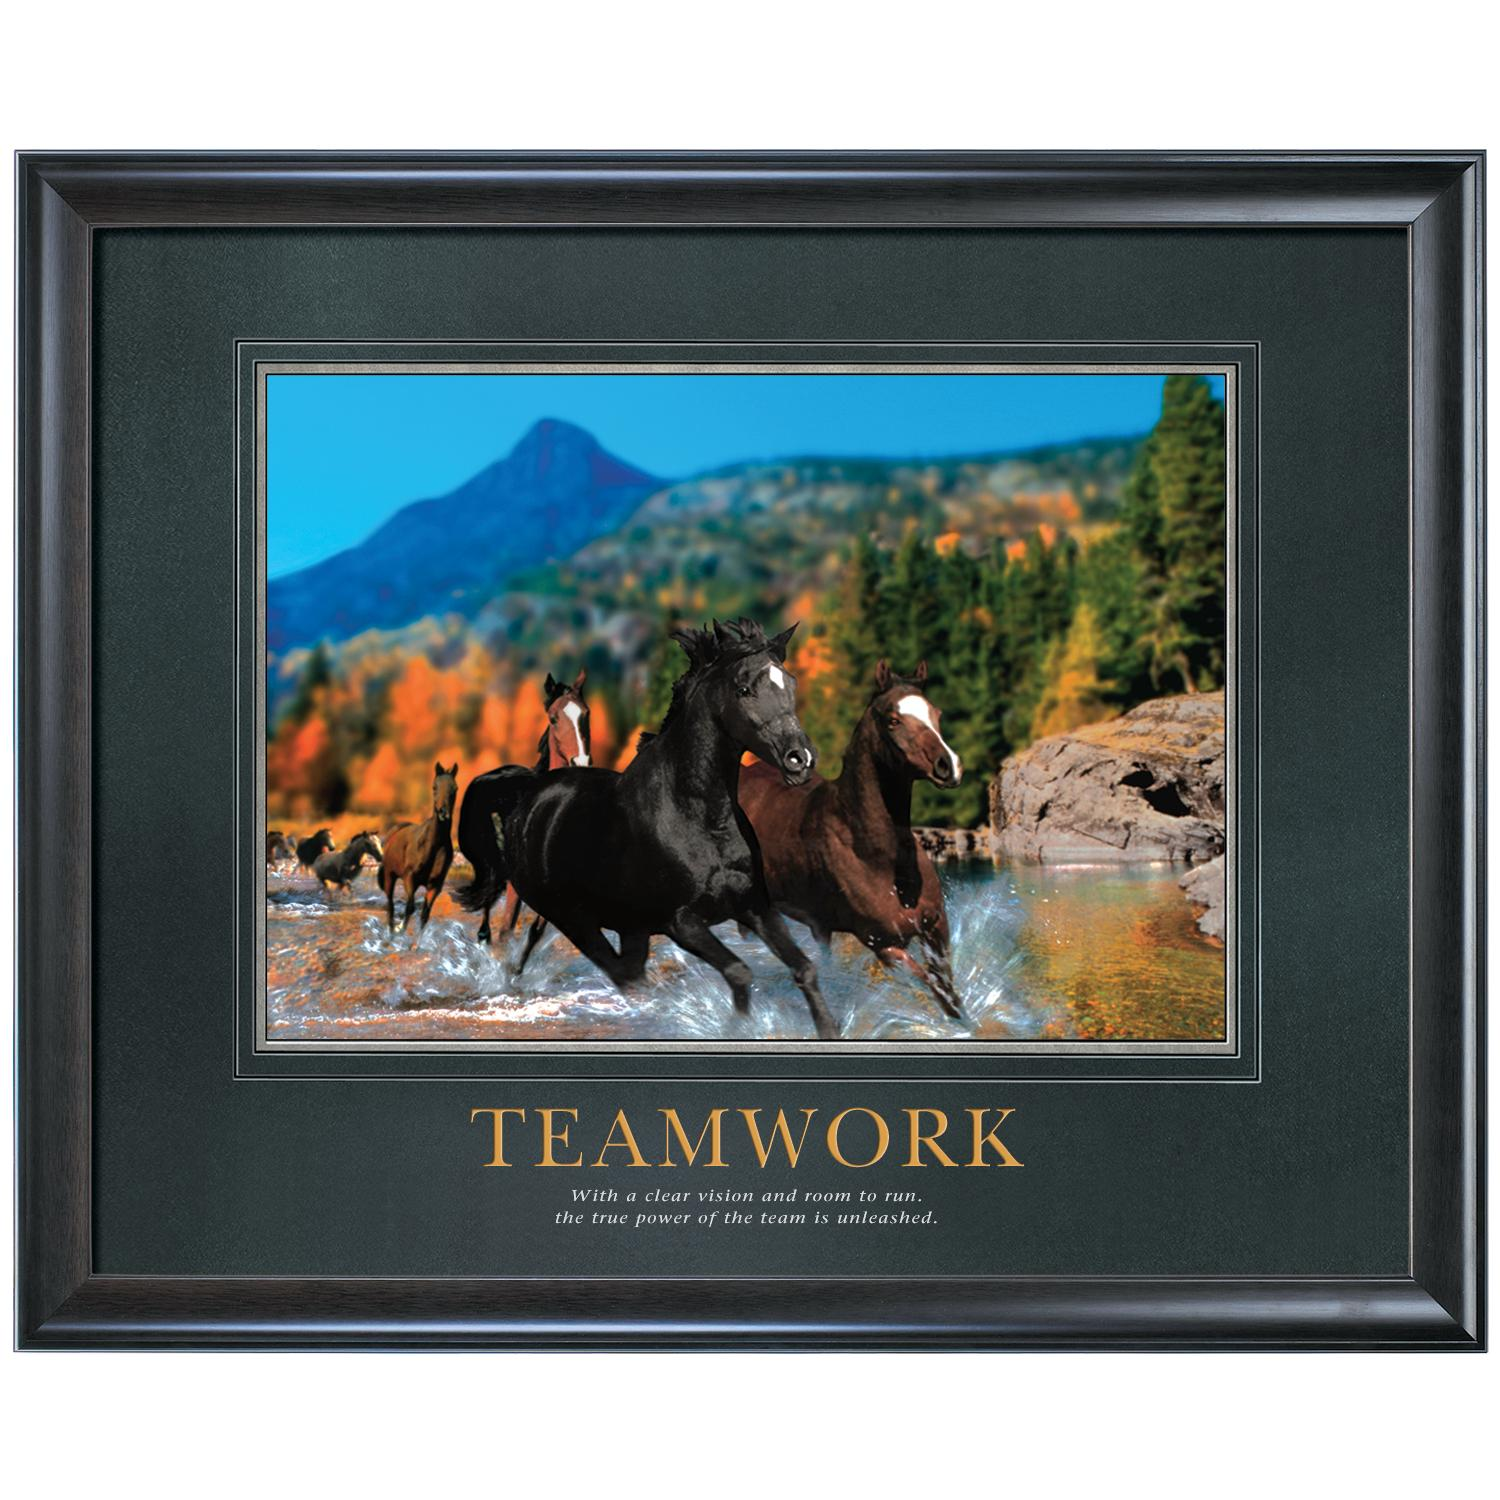 And Sale Center   Teamwork Horses Motivational Poster By Successories